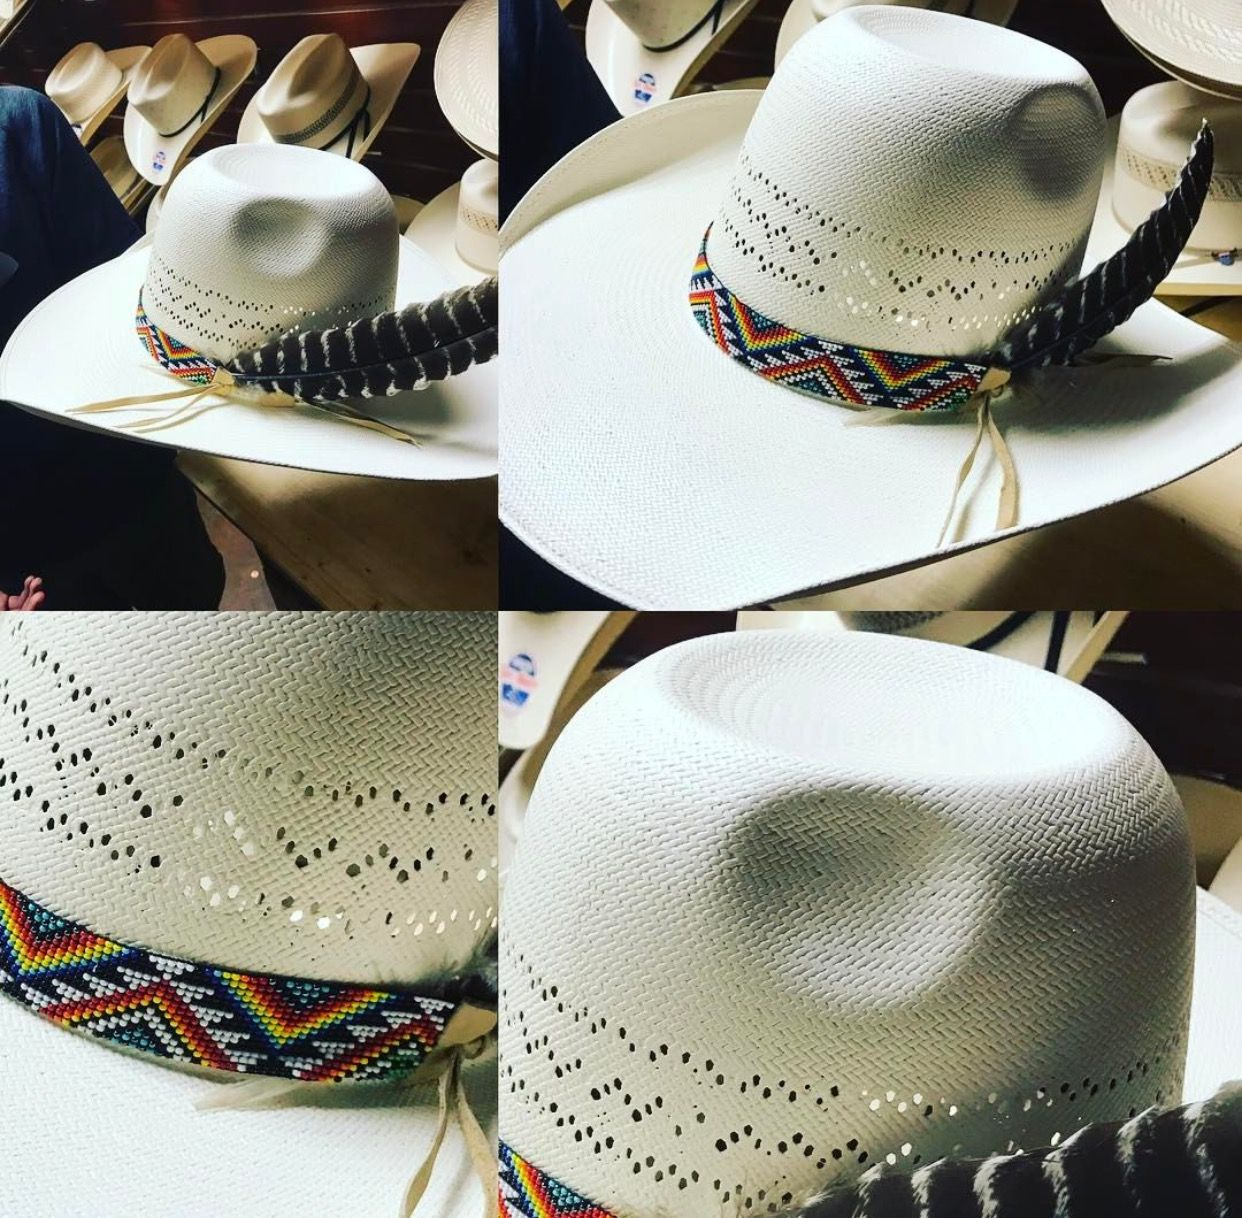 c84cce3894c1b Pin by Ericka Dawn on Hats in 2019